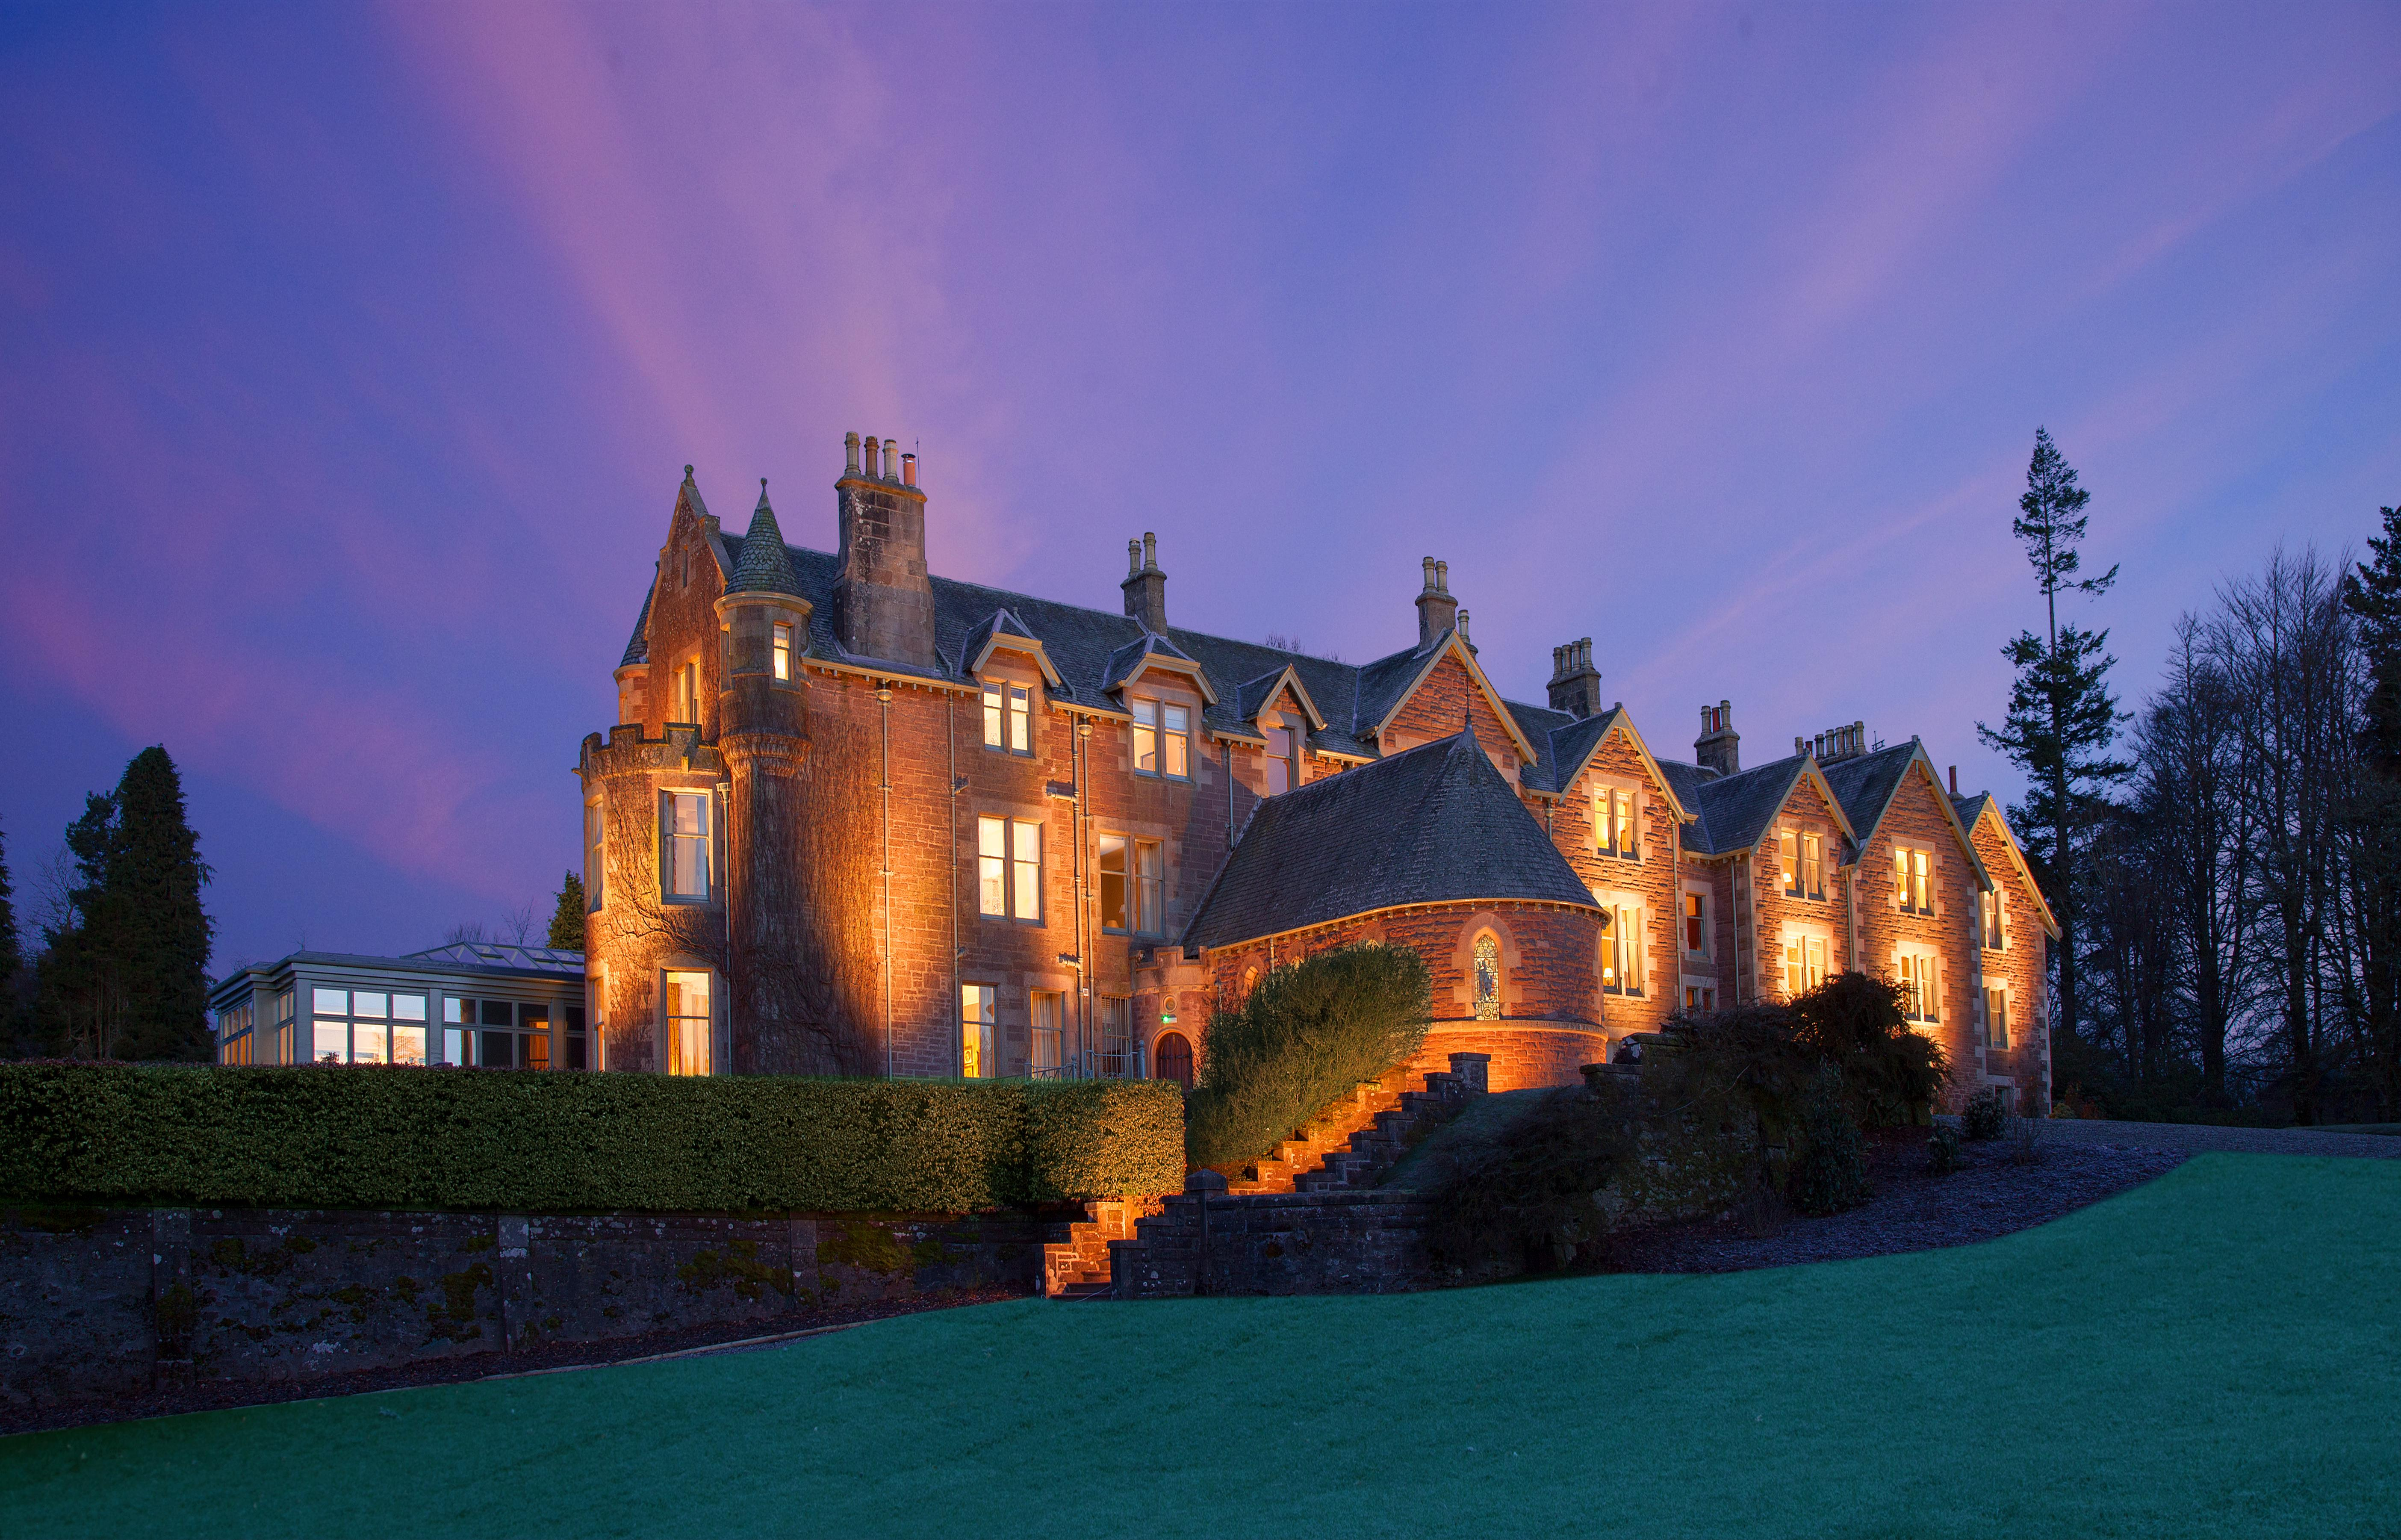 Cromlix House - the hotel owned by Andy Murray